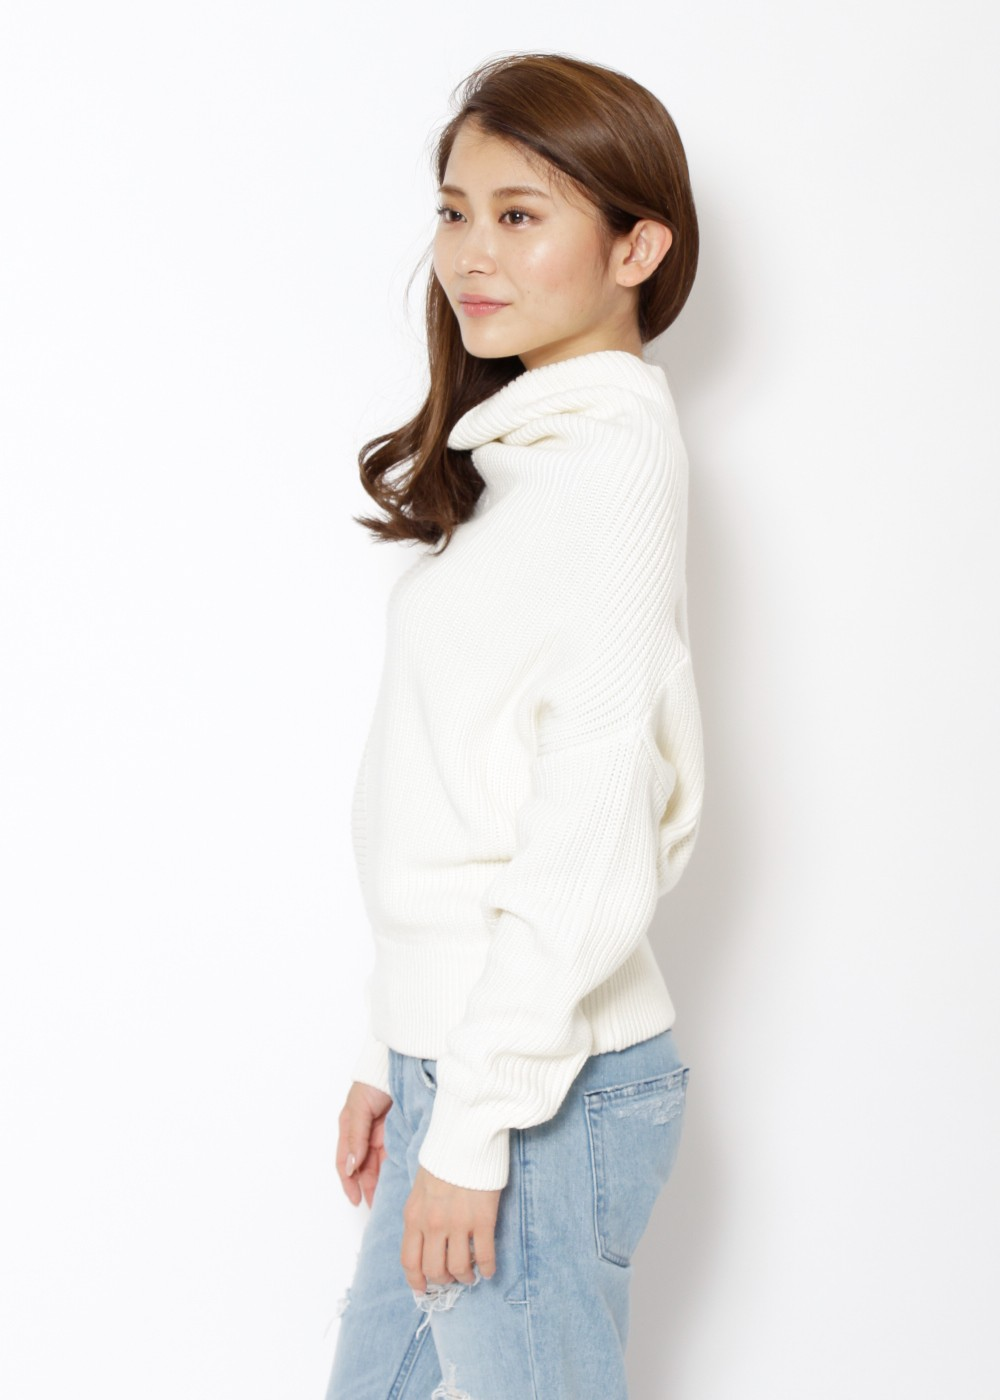 【最大80%OFF】変形ボトルネックKNIT|OFF WHITE|ニット|URBAN RESEARCH warehouse Tops&Outer